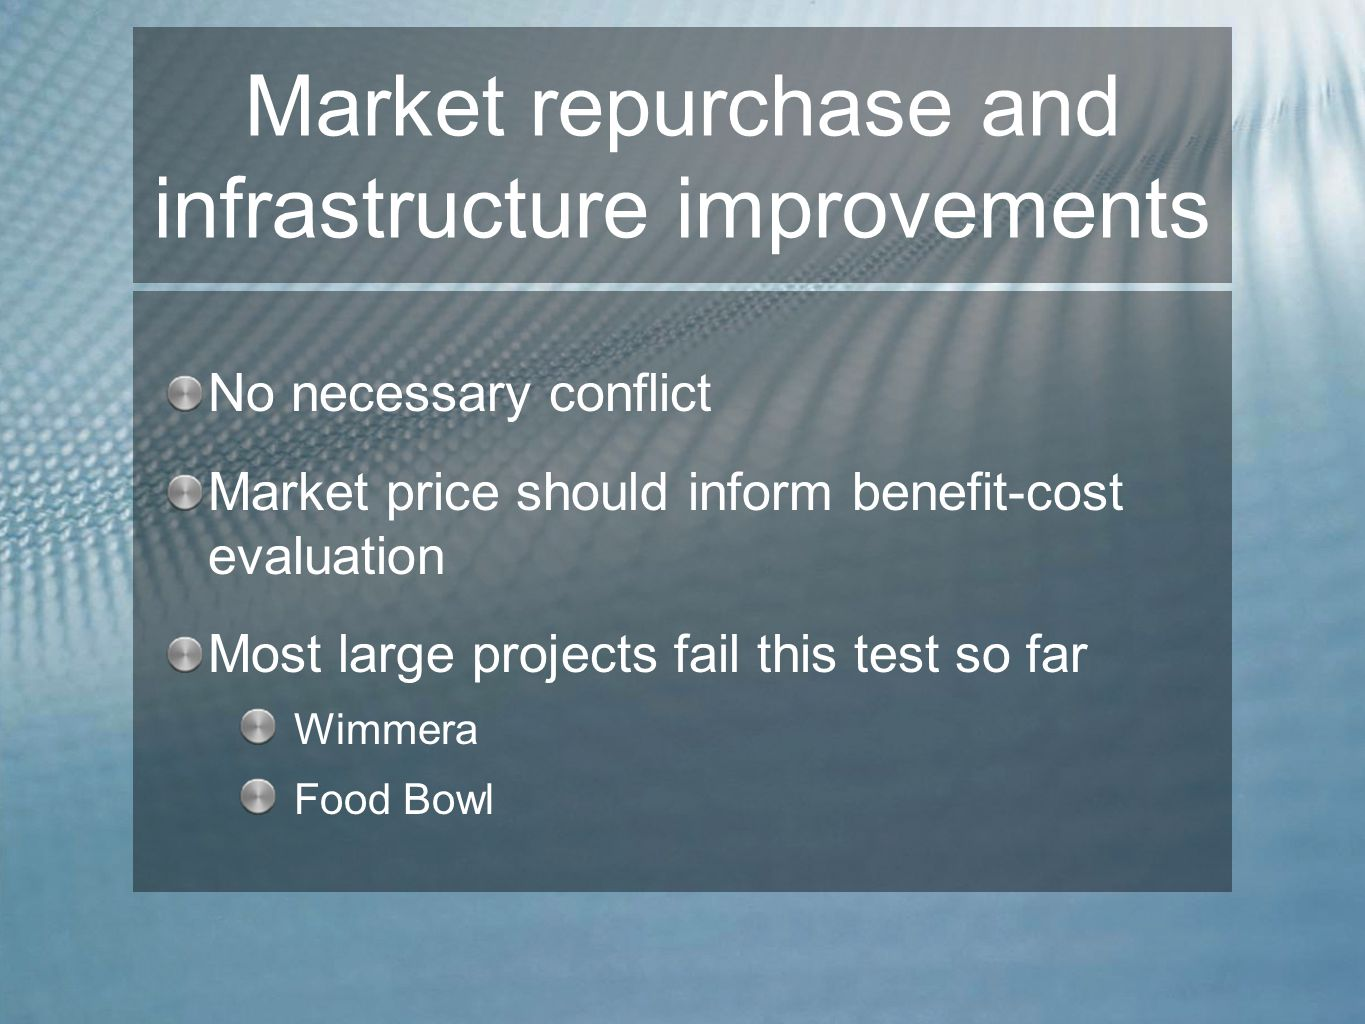 Repurchase will drive private infrastructure improvements Water savings on-farm allow sale of entitlements Need to be careful in accounting for return flows Laser levelling